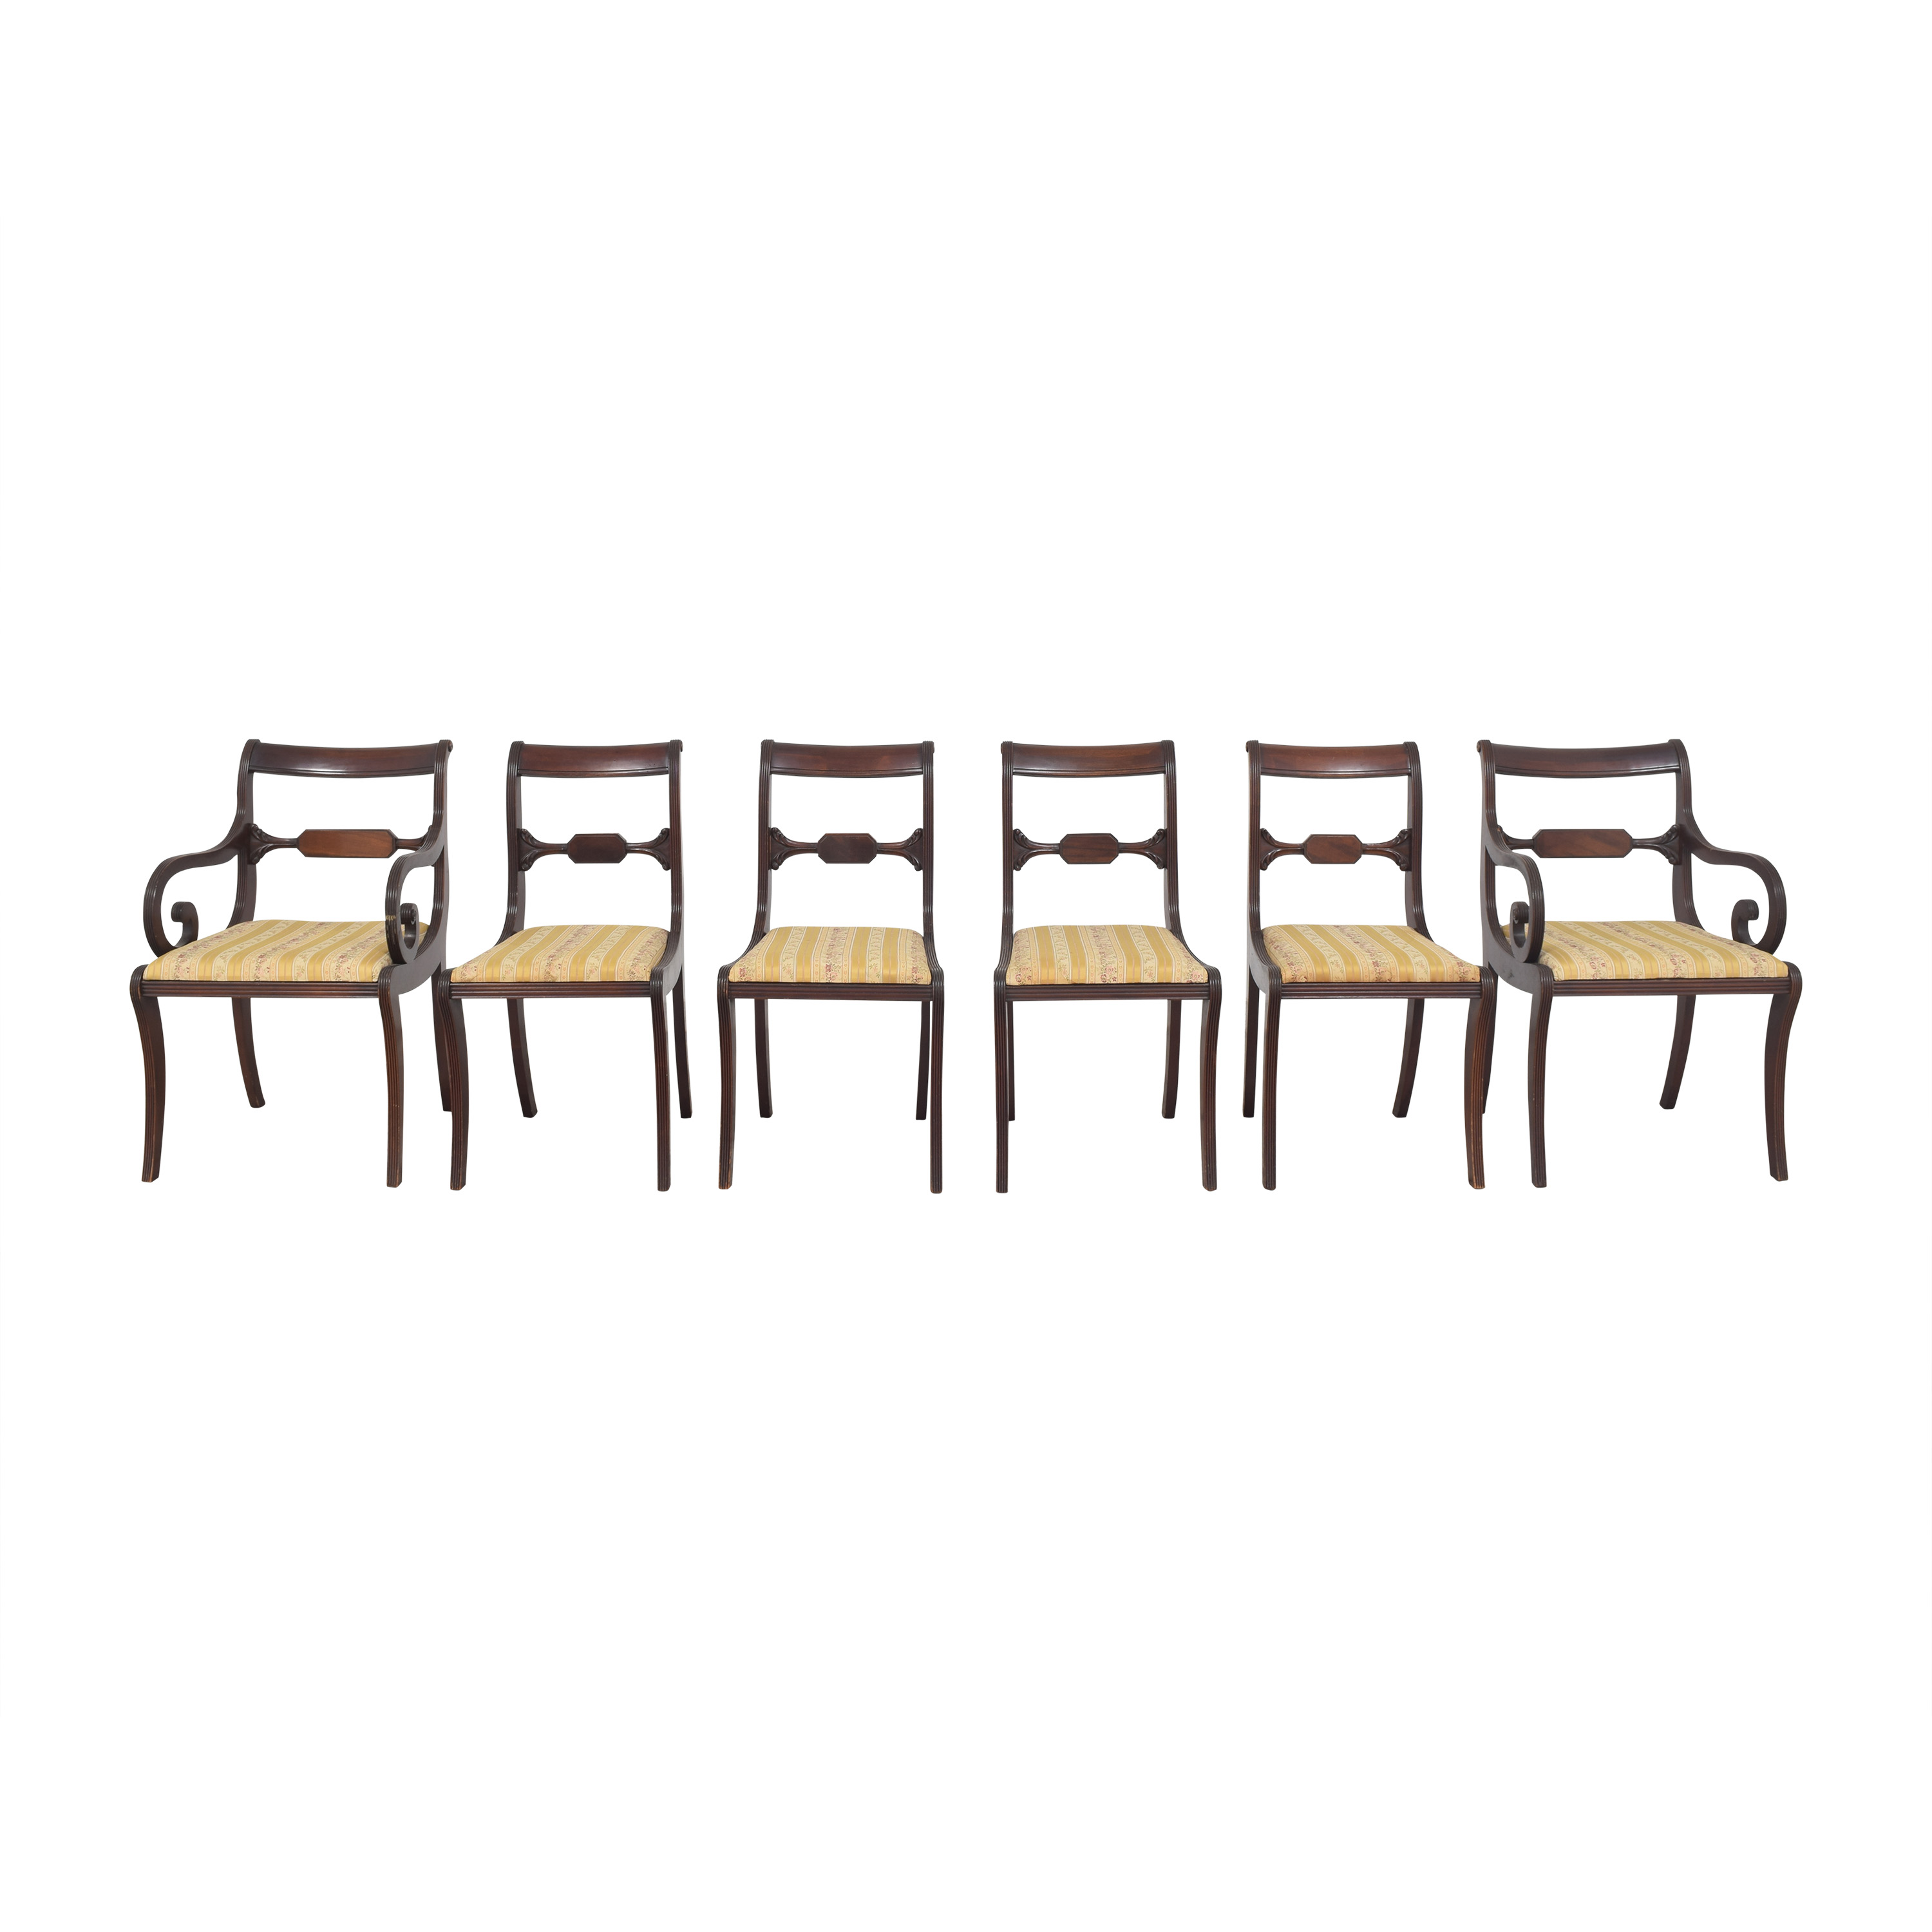 Upholstered Seat Dining Chairs on sale